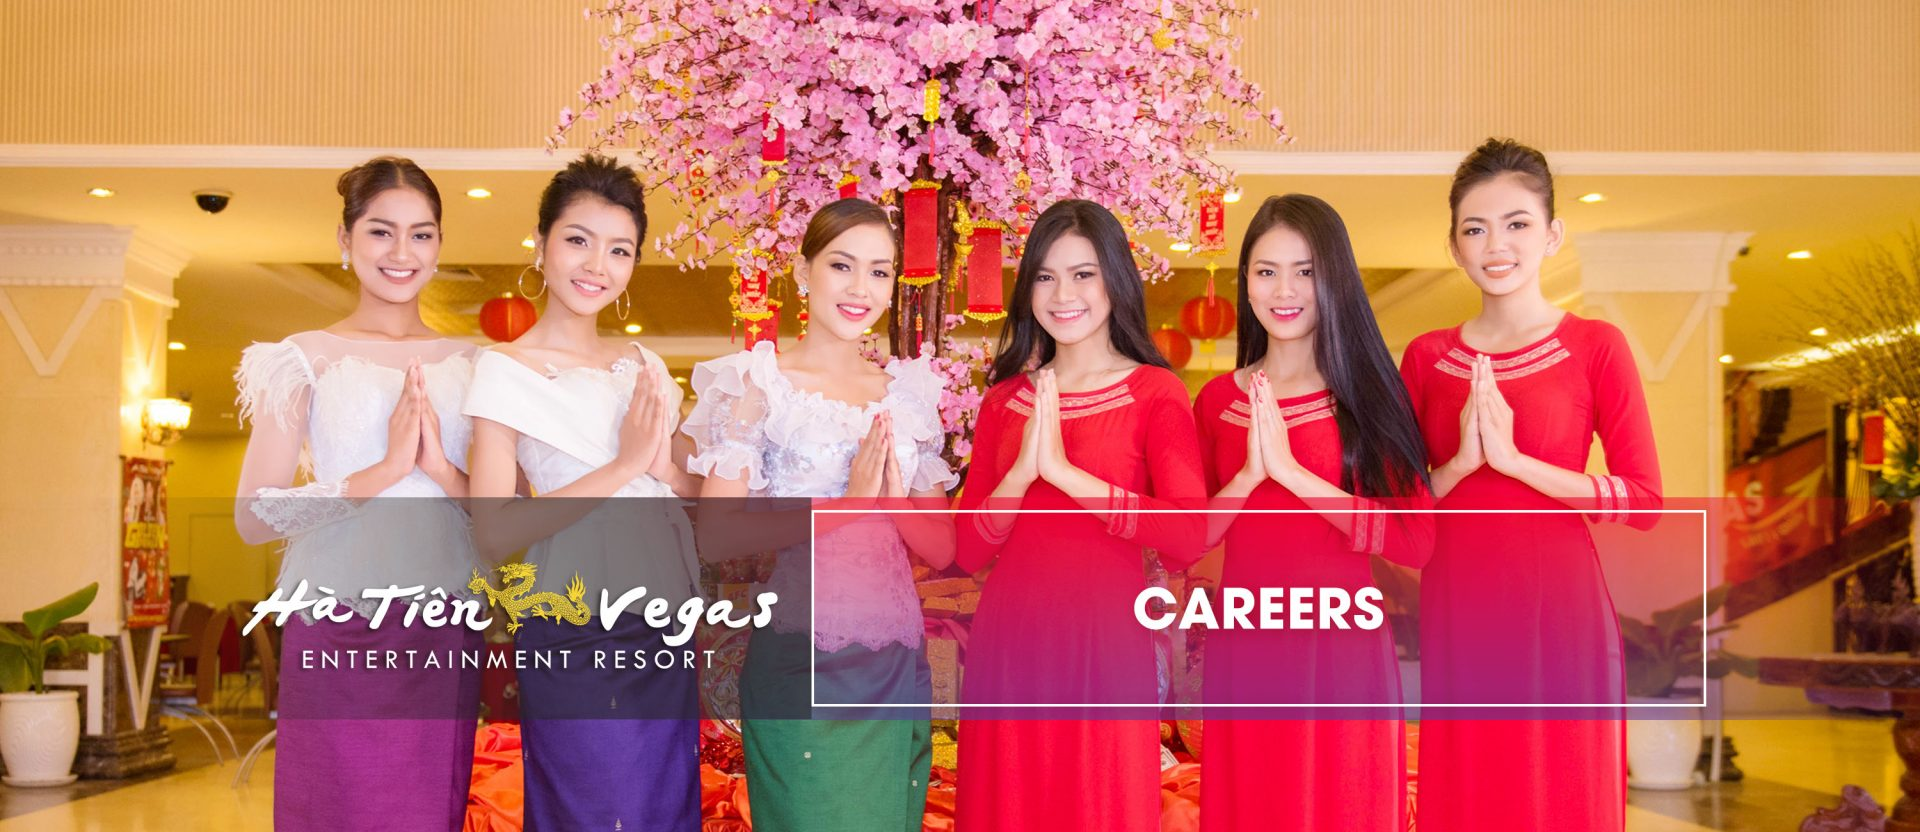 Look for job on our careers page at Ha Tien Vegas Hotel & Resort in Cambodia